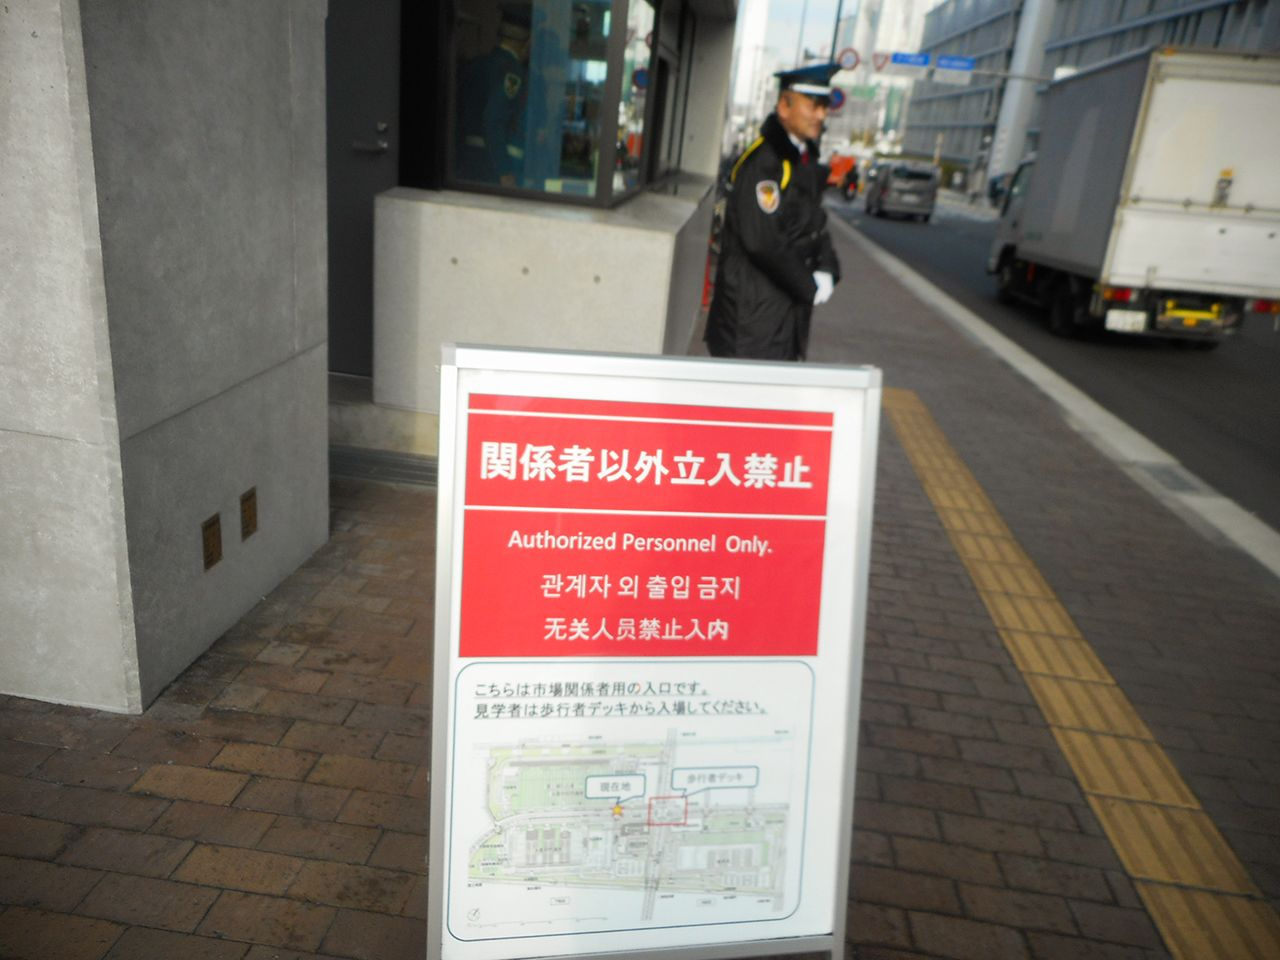 Security guards are stationed at all entrances to Toyosu Market. The public is admitted only via the Visitor's Tour.